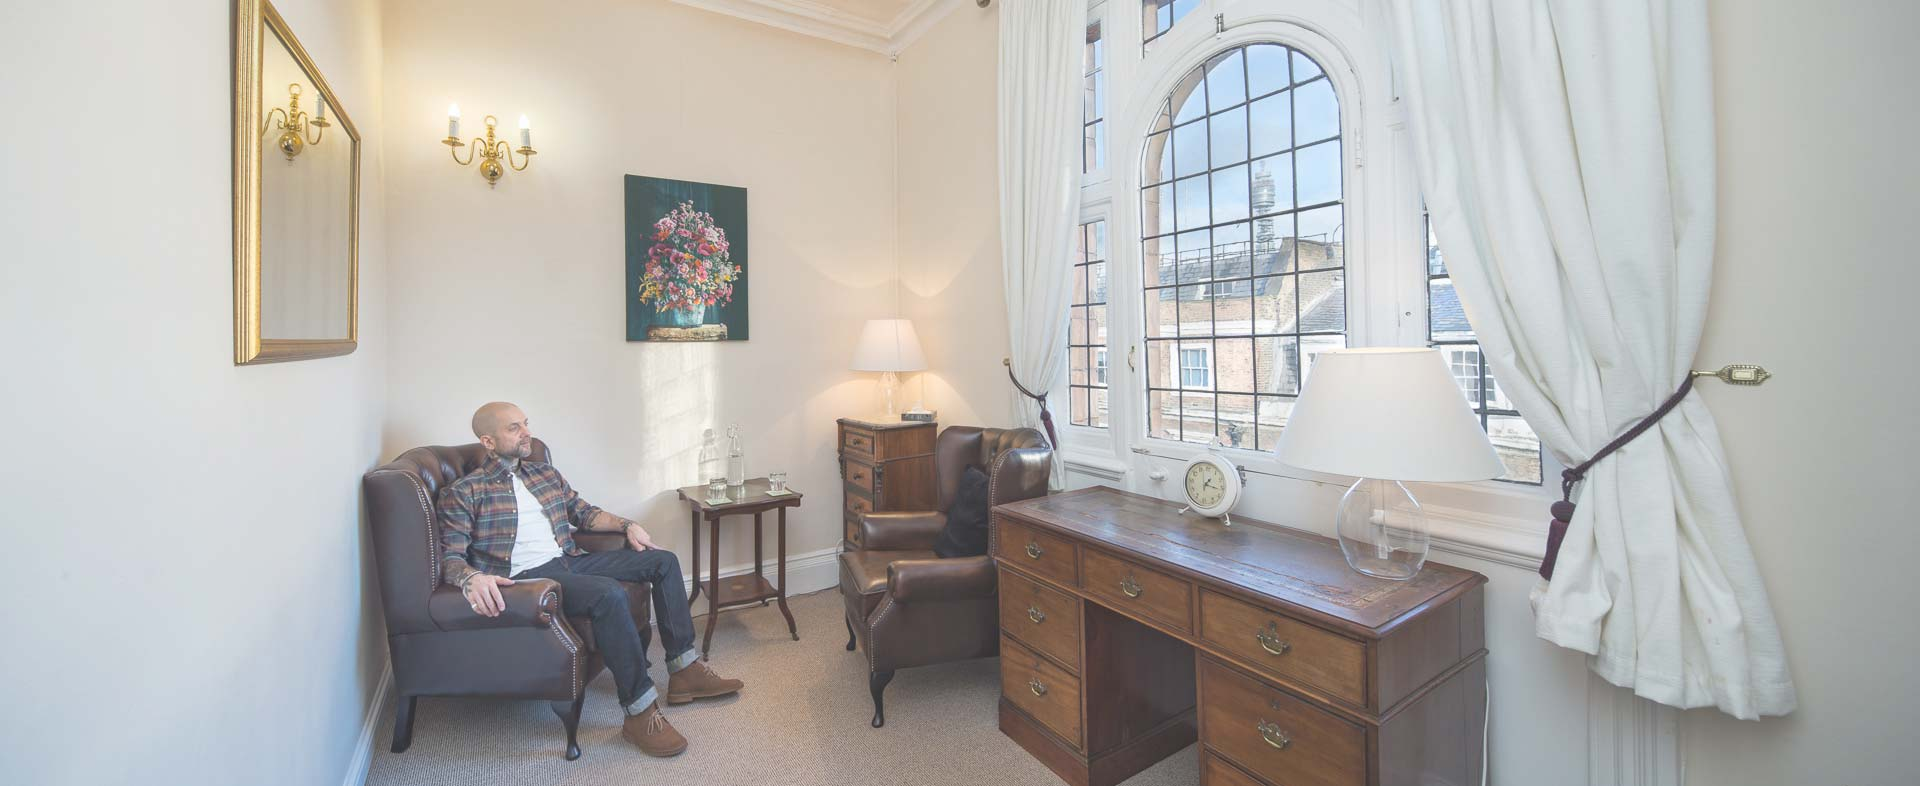 Jon Gee - Psychotherapy in Harley St London W1